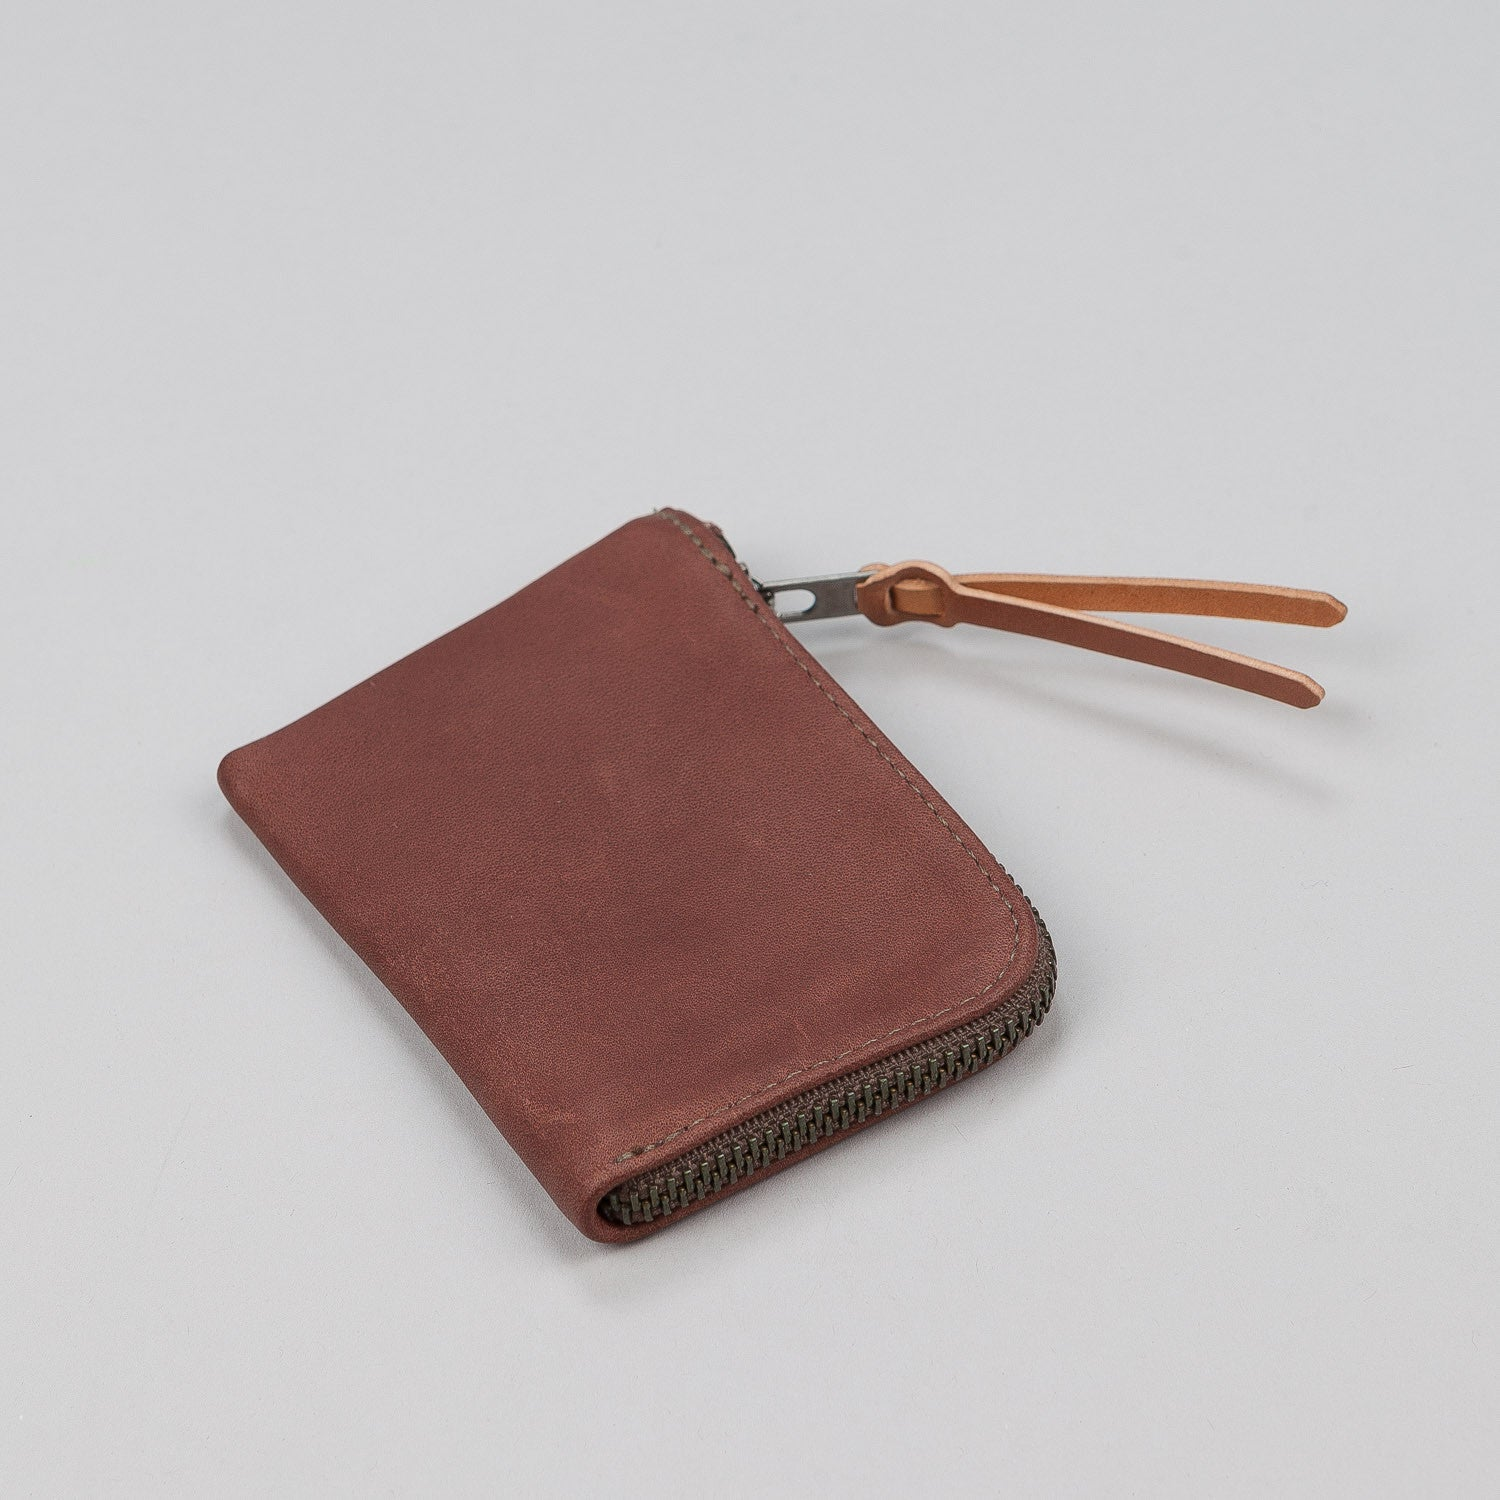 Makr Zip Slim Leather Wallet - Walnut